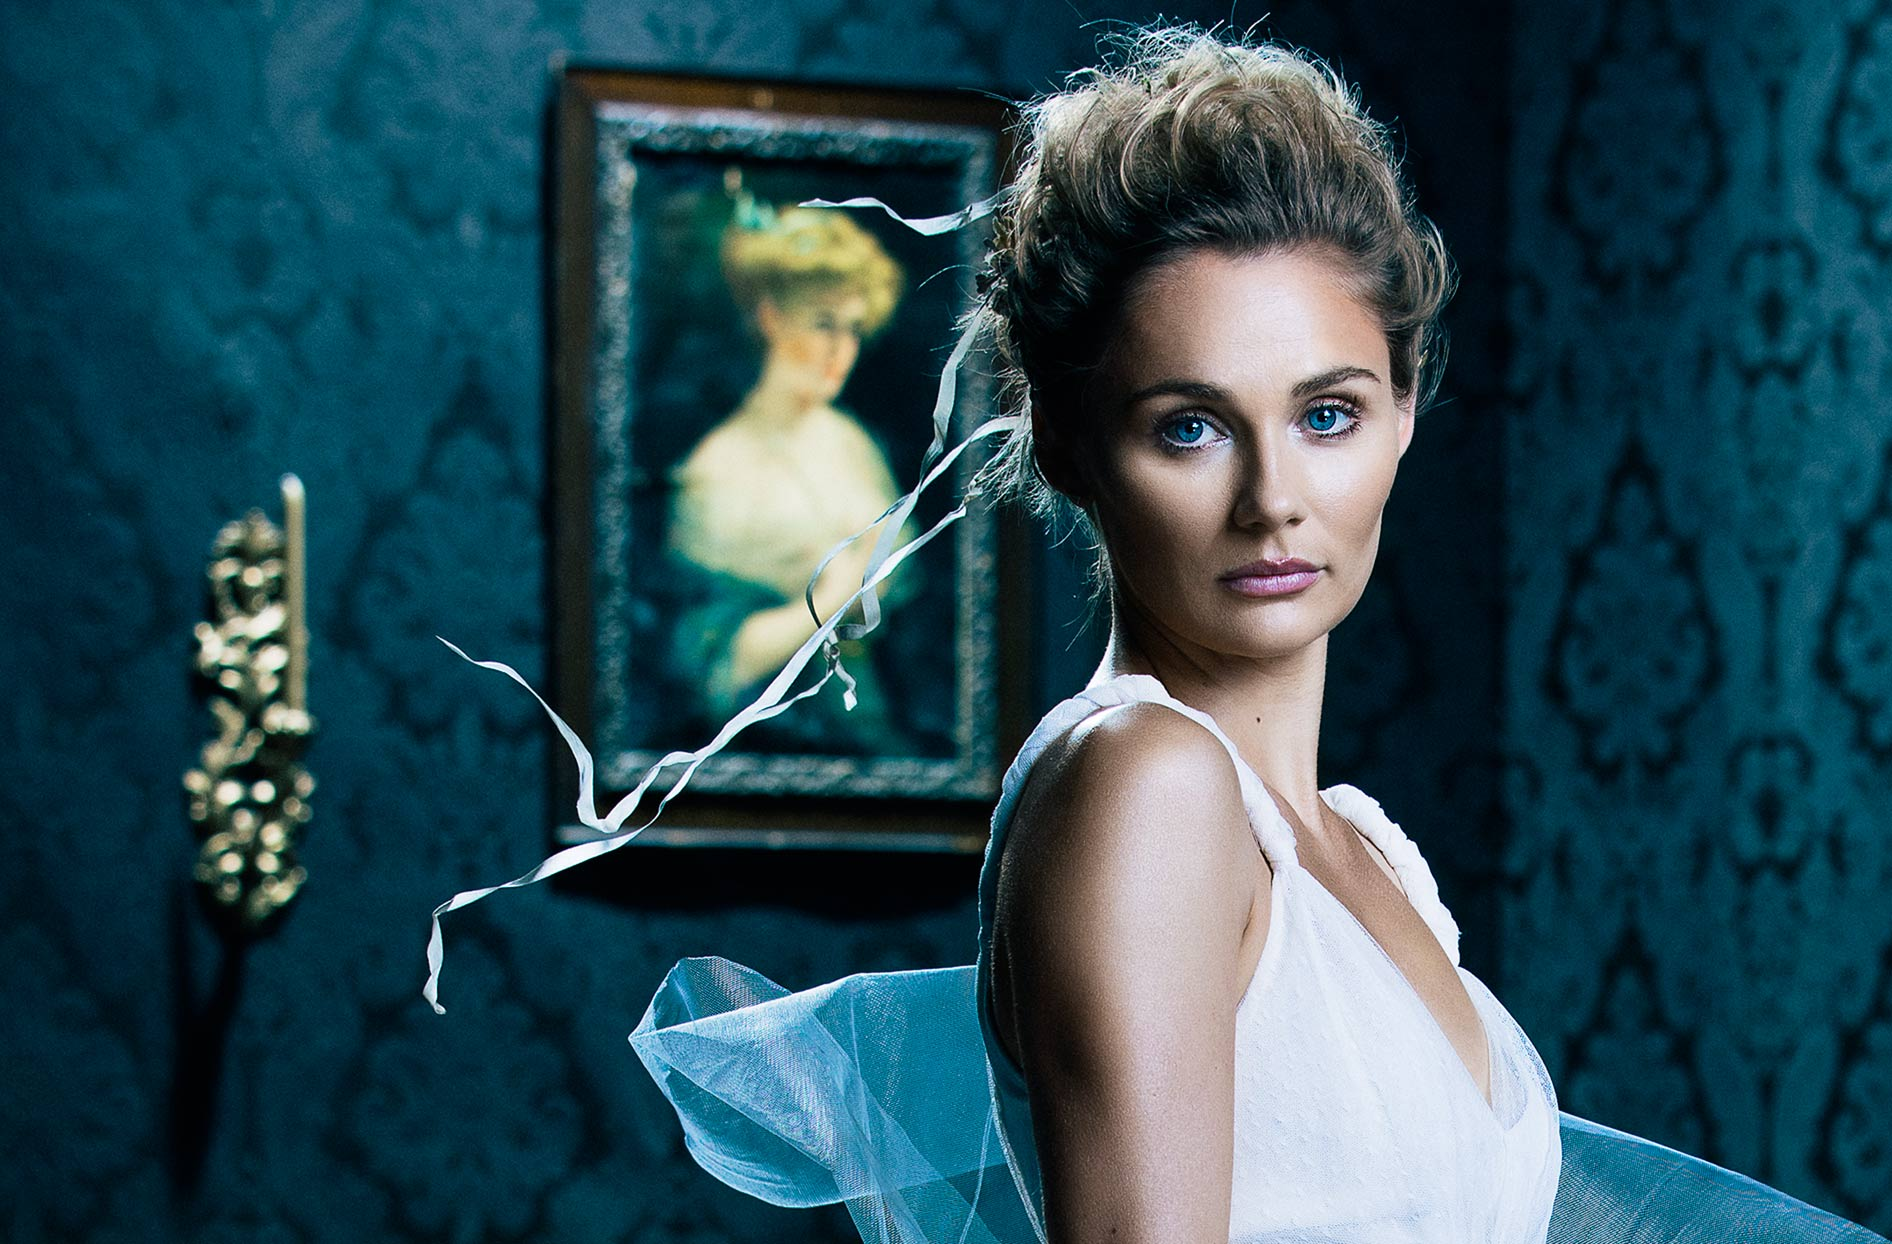 Mark DeLong - Celebrity Photographer - Actress in a white dress posing in living room with painting in background.